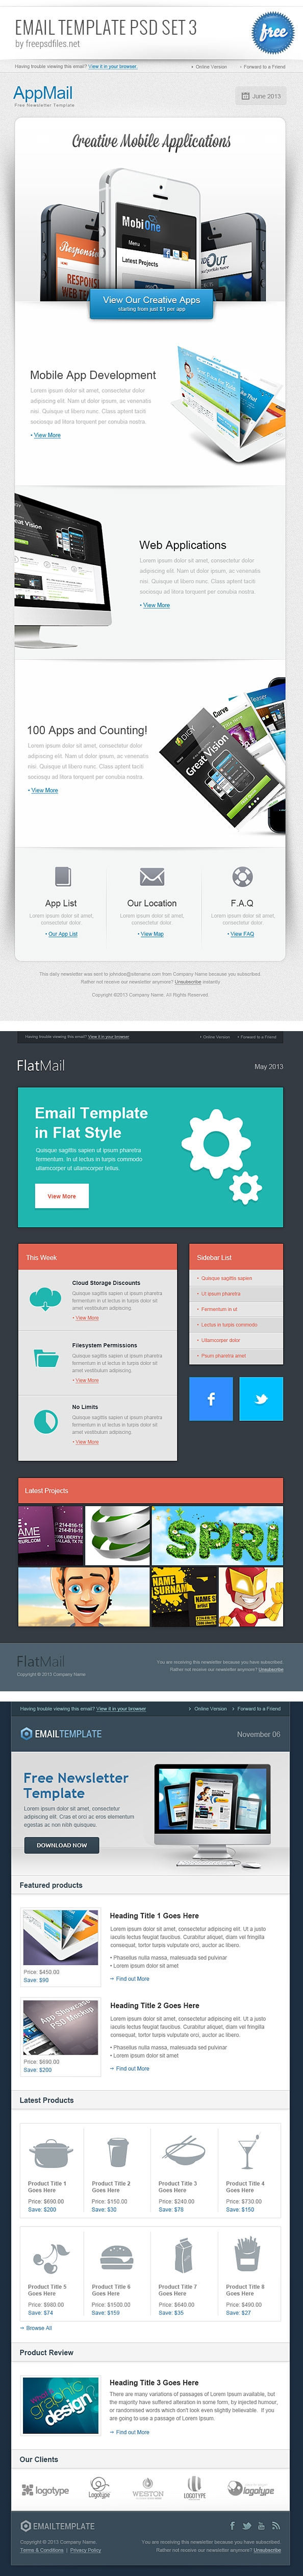 email-template-psd-set-3-